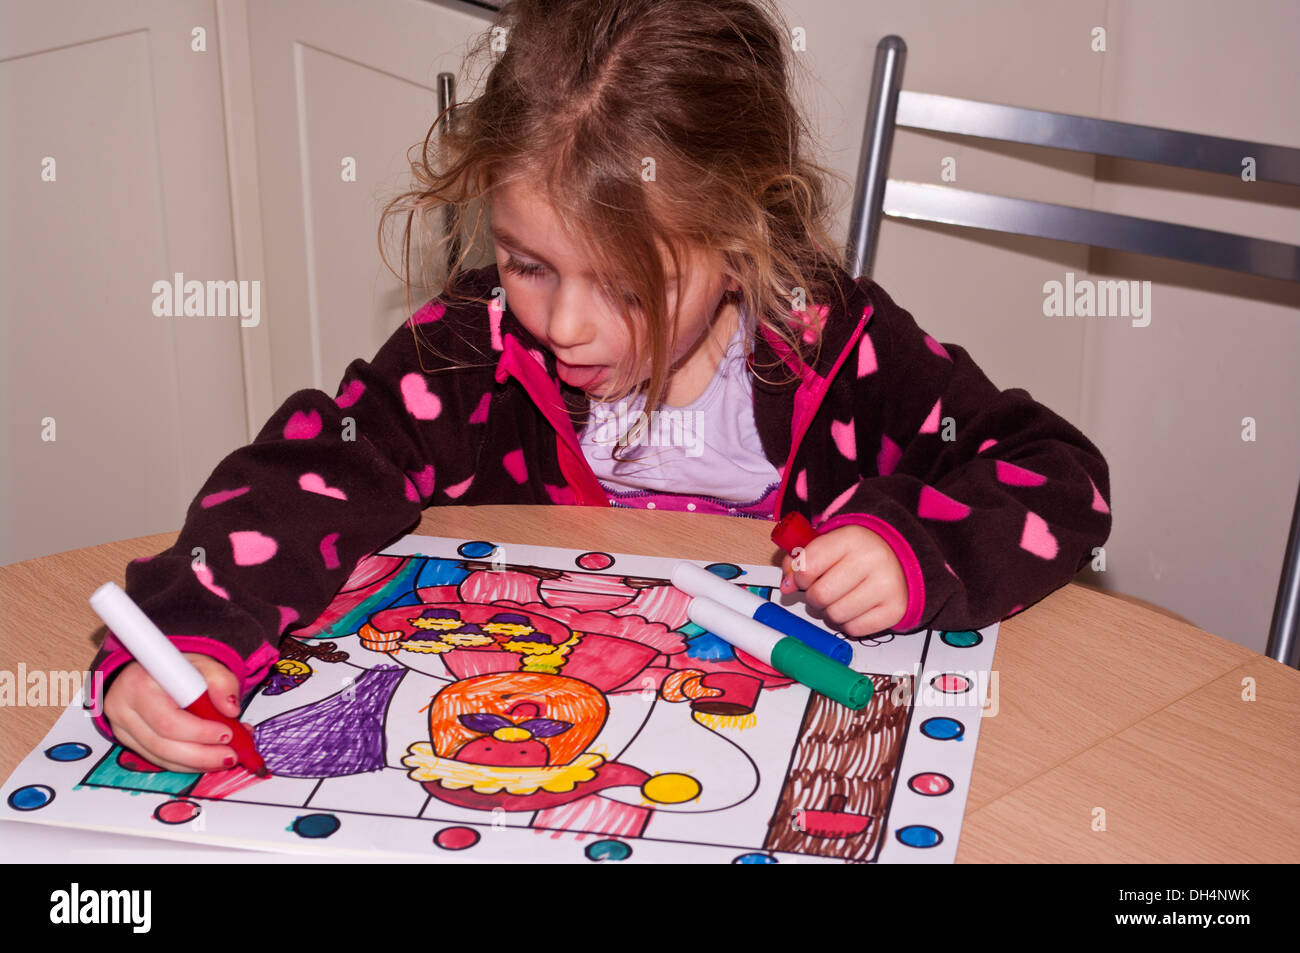 Child Colouring A Picture In A Colouring Book Stock Photo: 62185247 ...